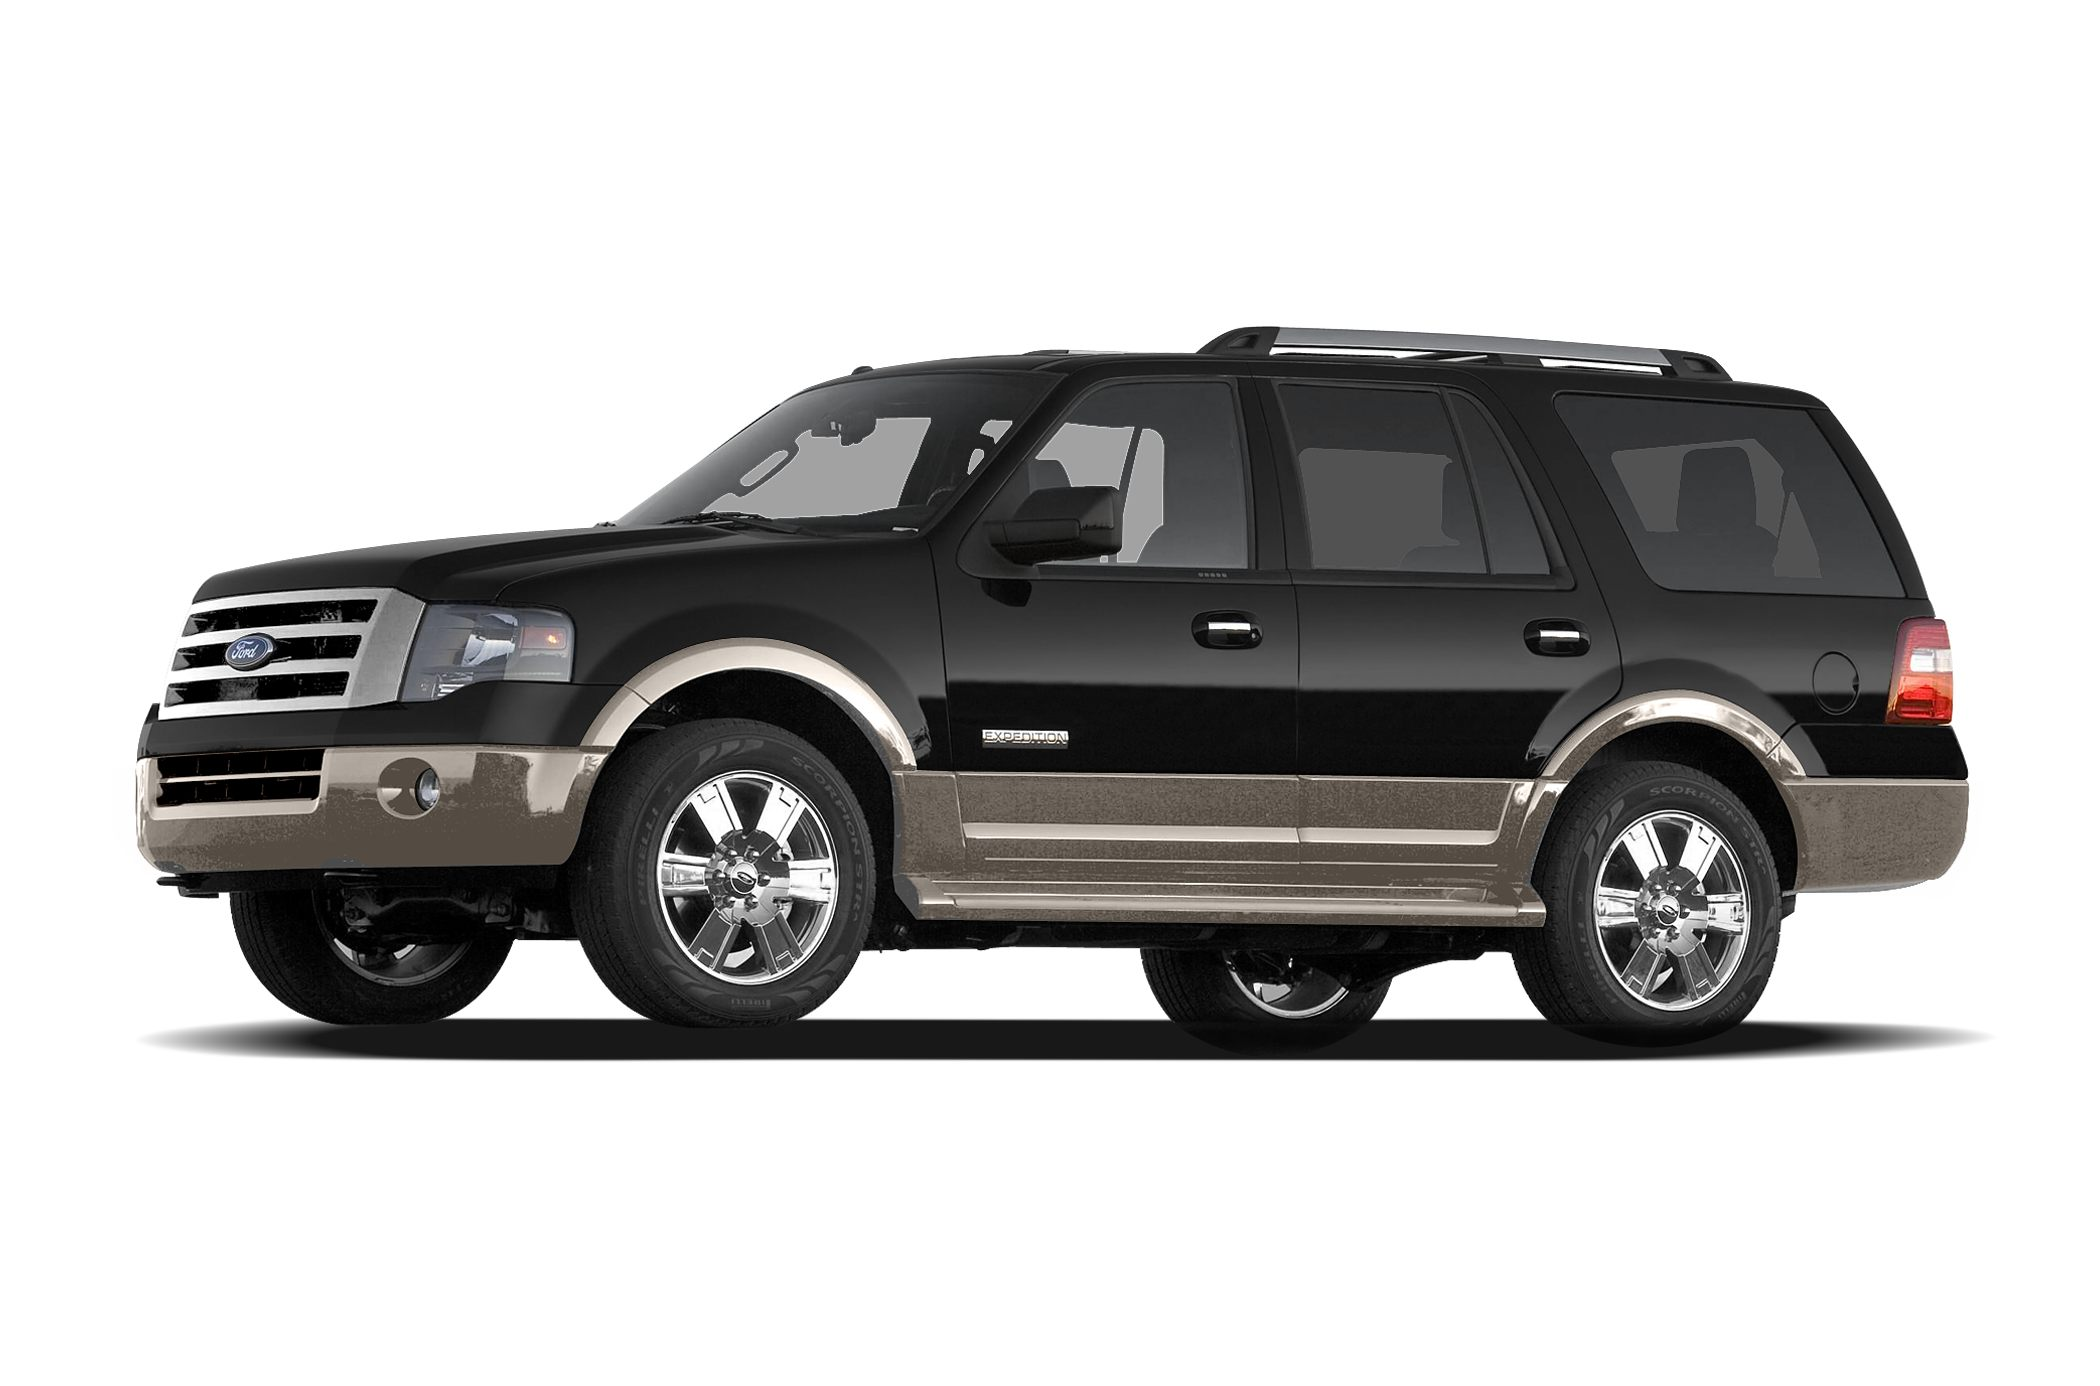 2008 Ford Expedition Eddie Bauer SUV for sale in Shreveport for $11,977 with 133,571 miles.